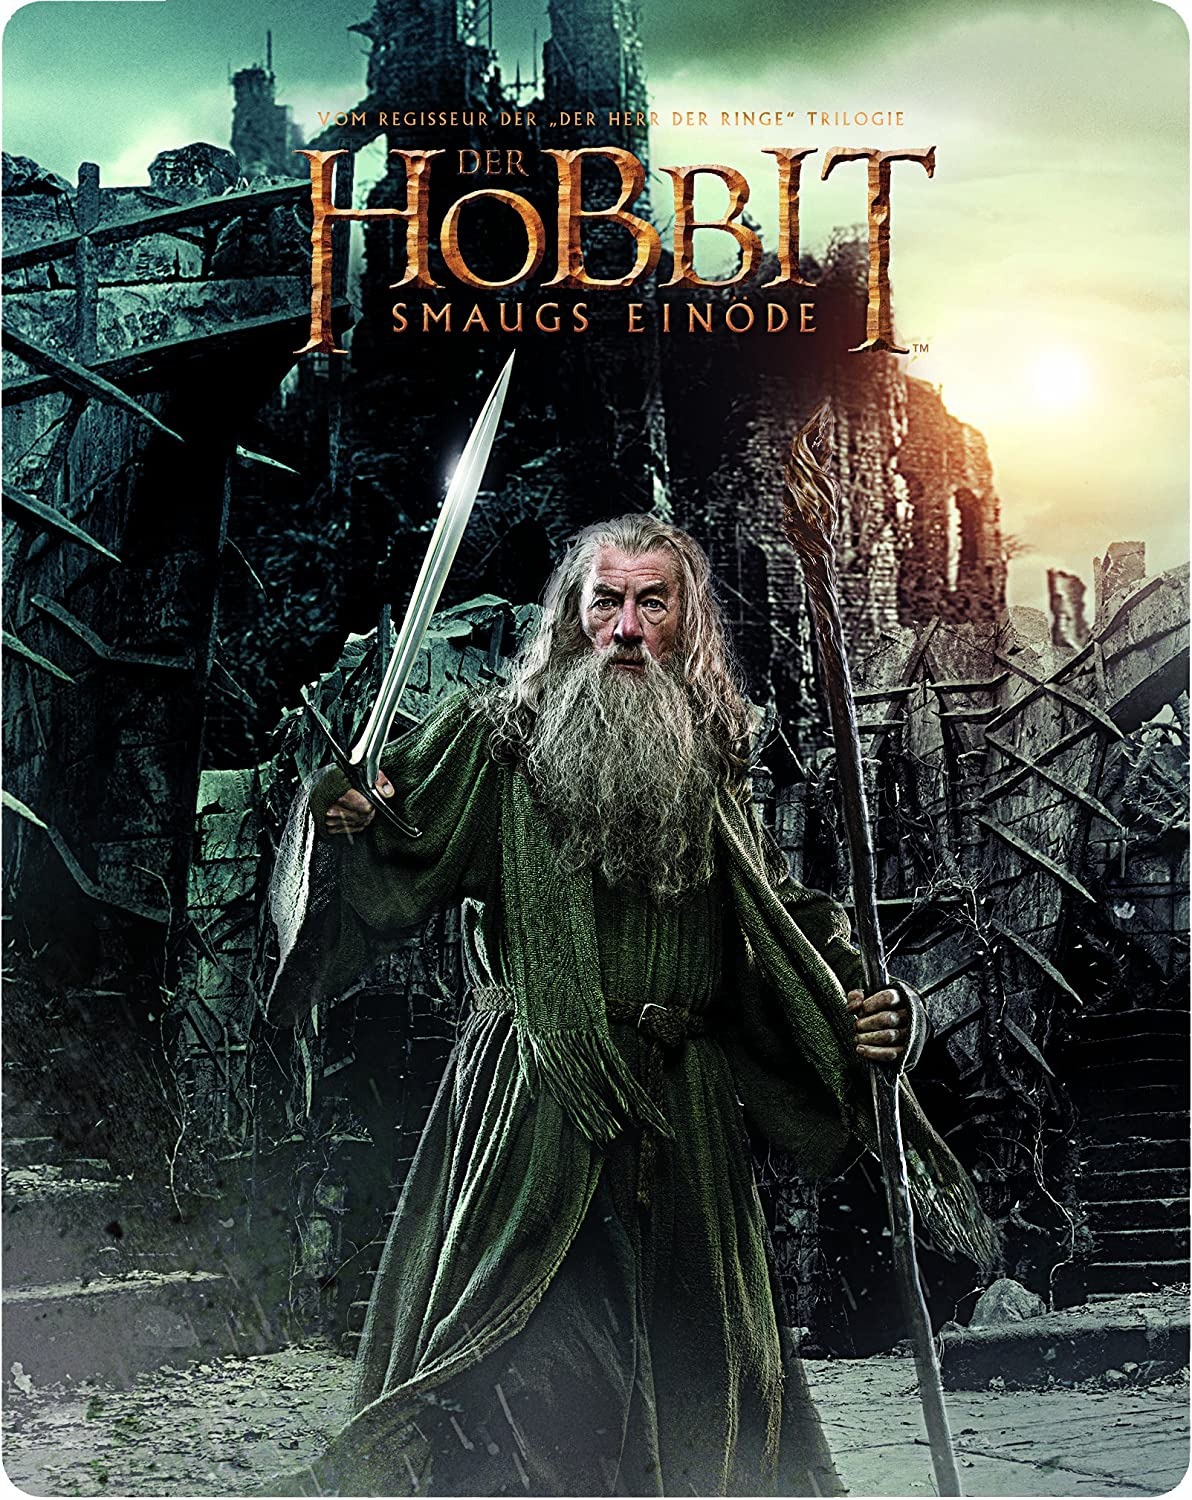 Der Hobbit: Smaugs Einöde Steelbook Blu-ray Limited Edition: Amazon ...